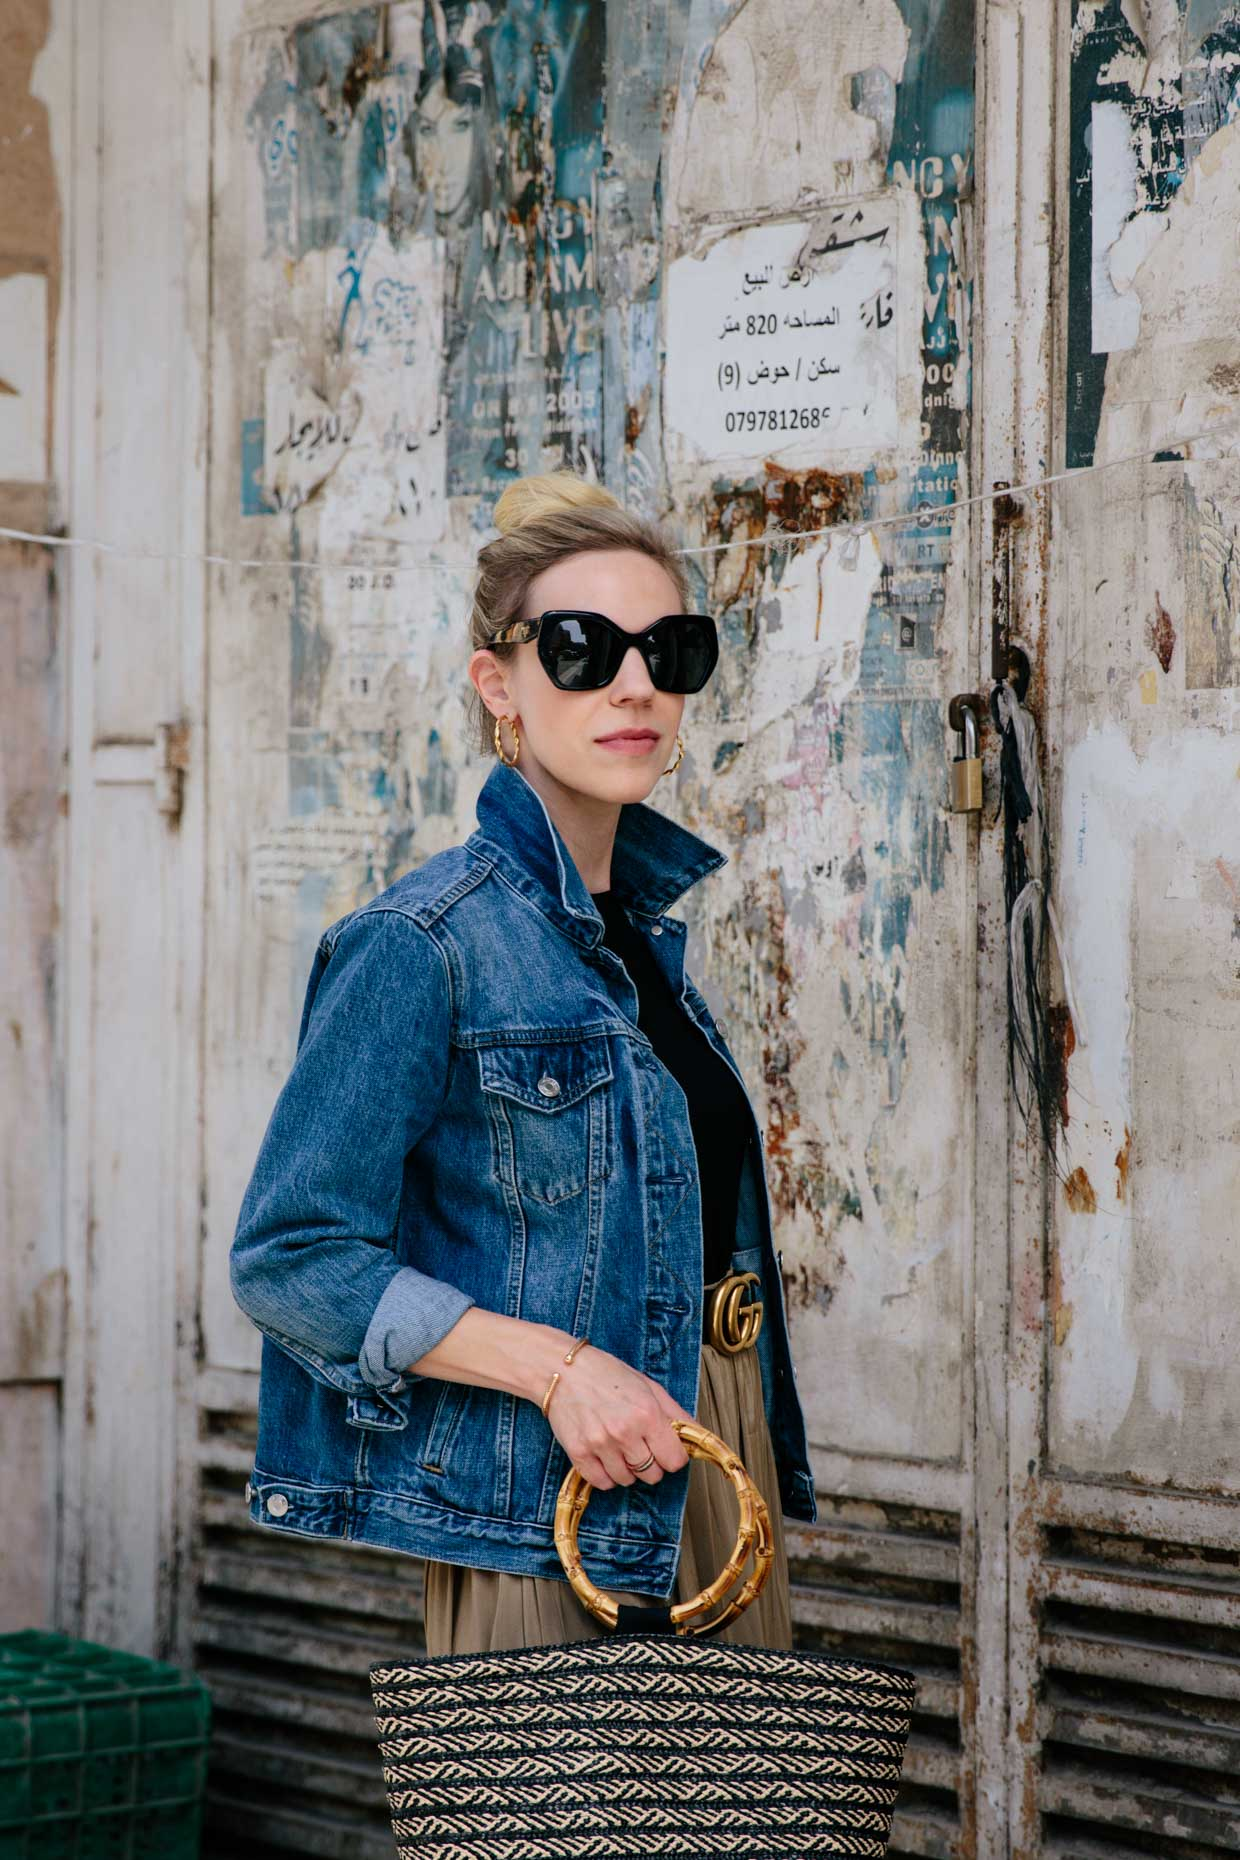 How to Wear a Denim Jacket From Summer to Fall - Meagan's Moda